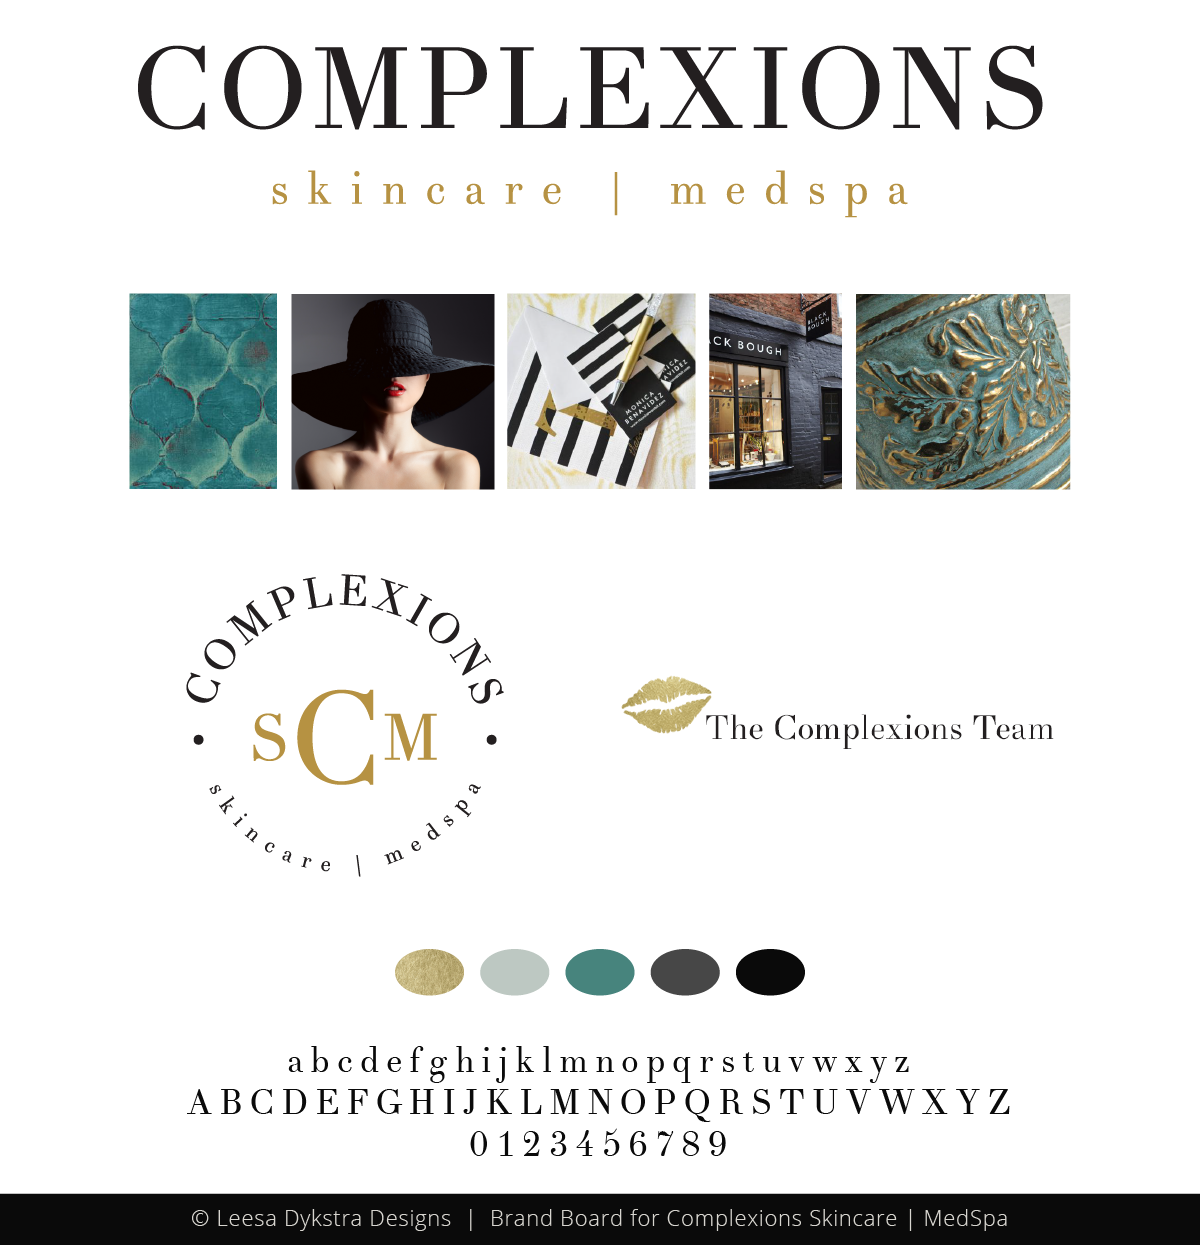 Brand Board for Complexions Skincare Medspa by Leesa Dykstra Designs